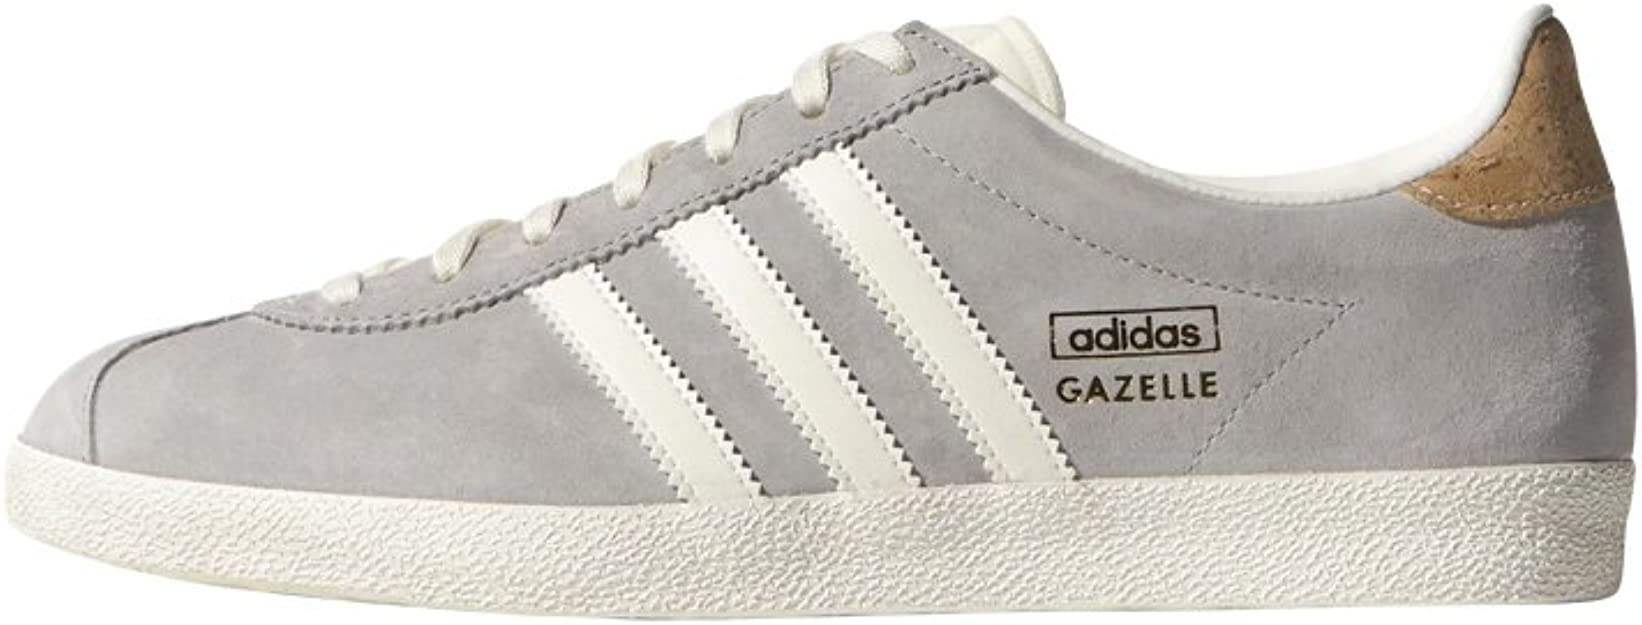 adidas Originals Gazelle Originals, Chaussons Sneaker Femme